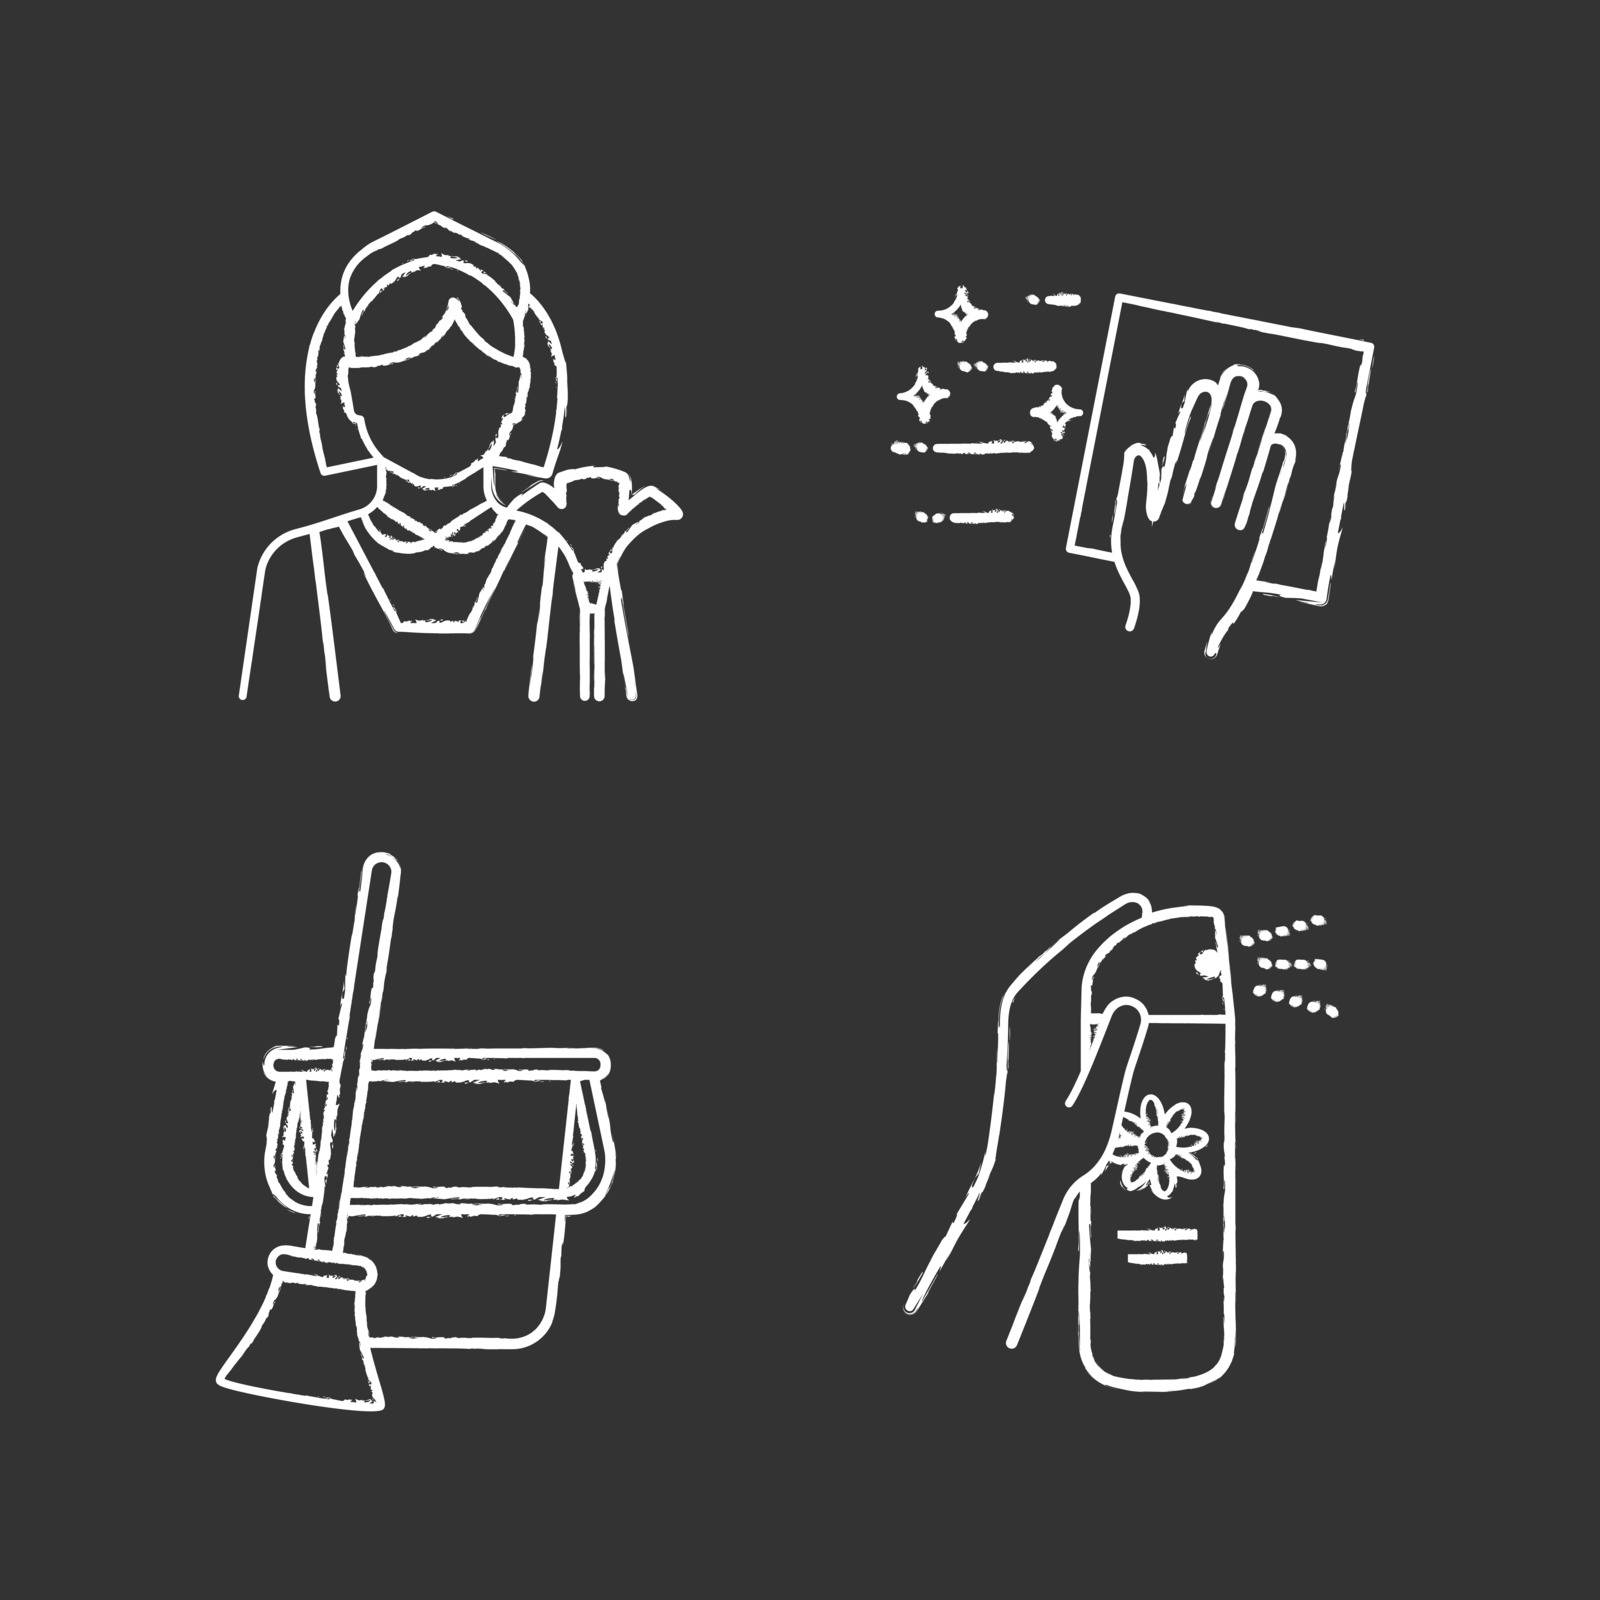 Cleaning service chalk icons set. Maid, cleaning napkin, broom and bucket, air freshener. Isolated vector chalkboard illustrations